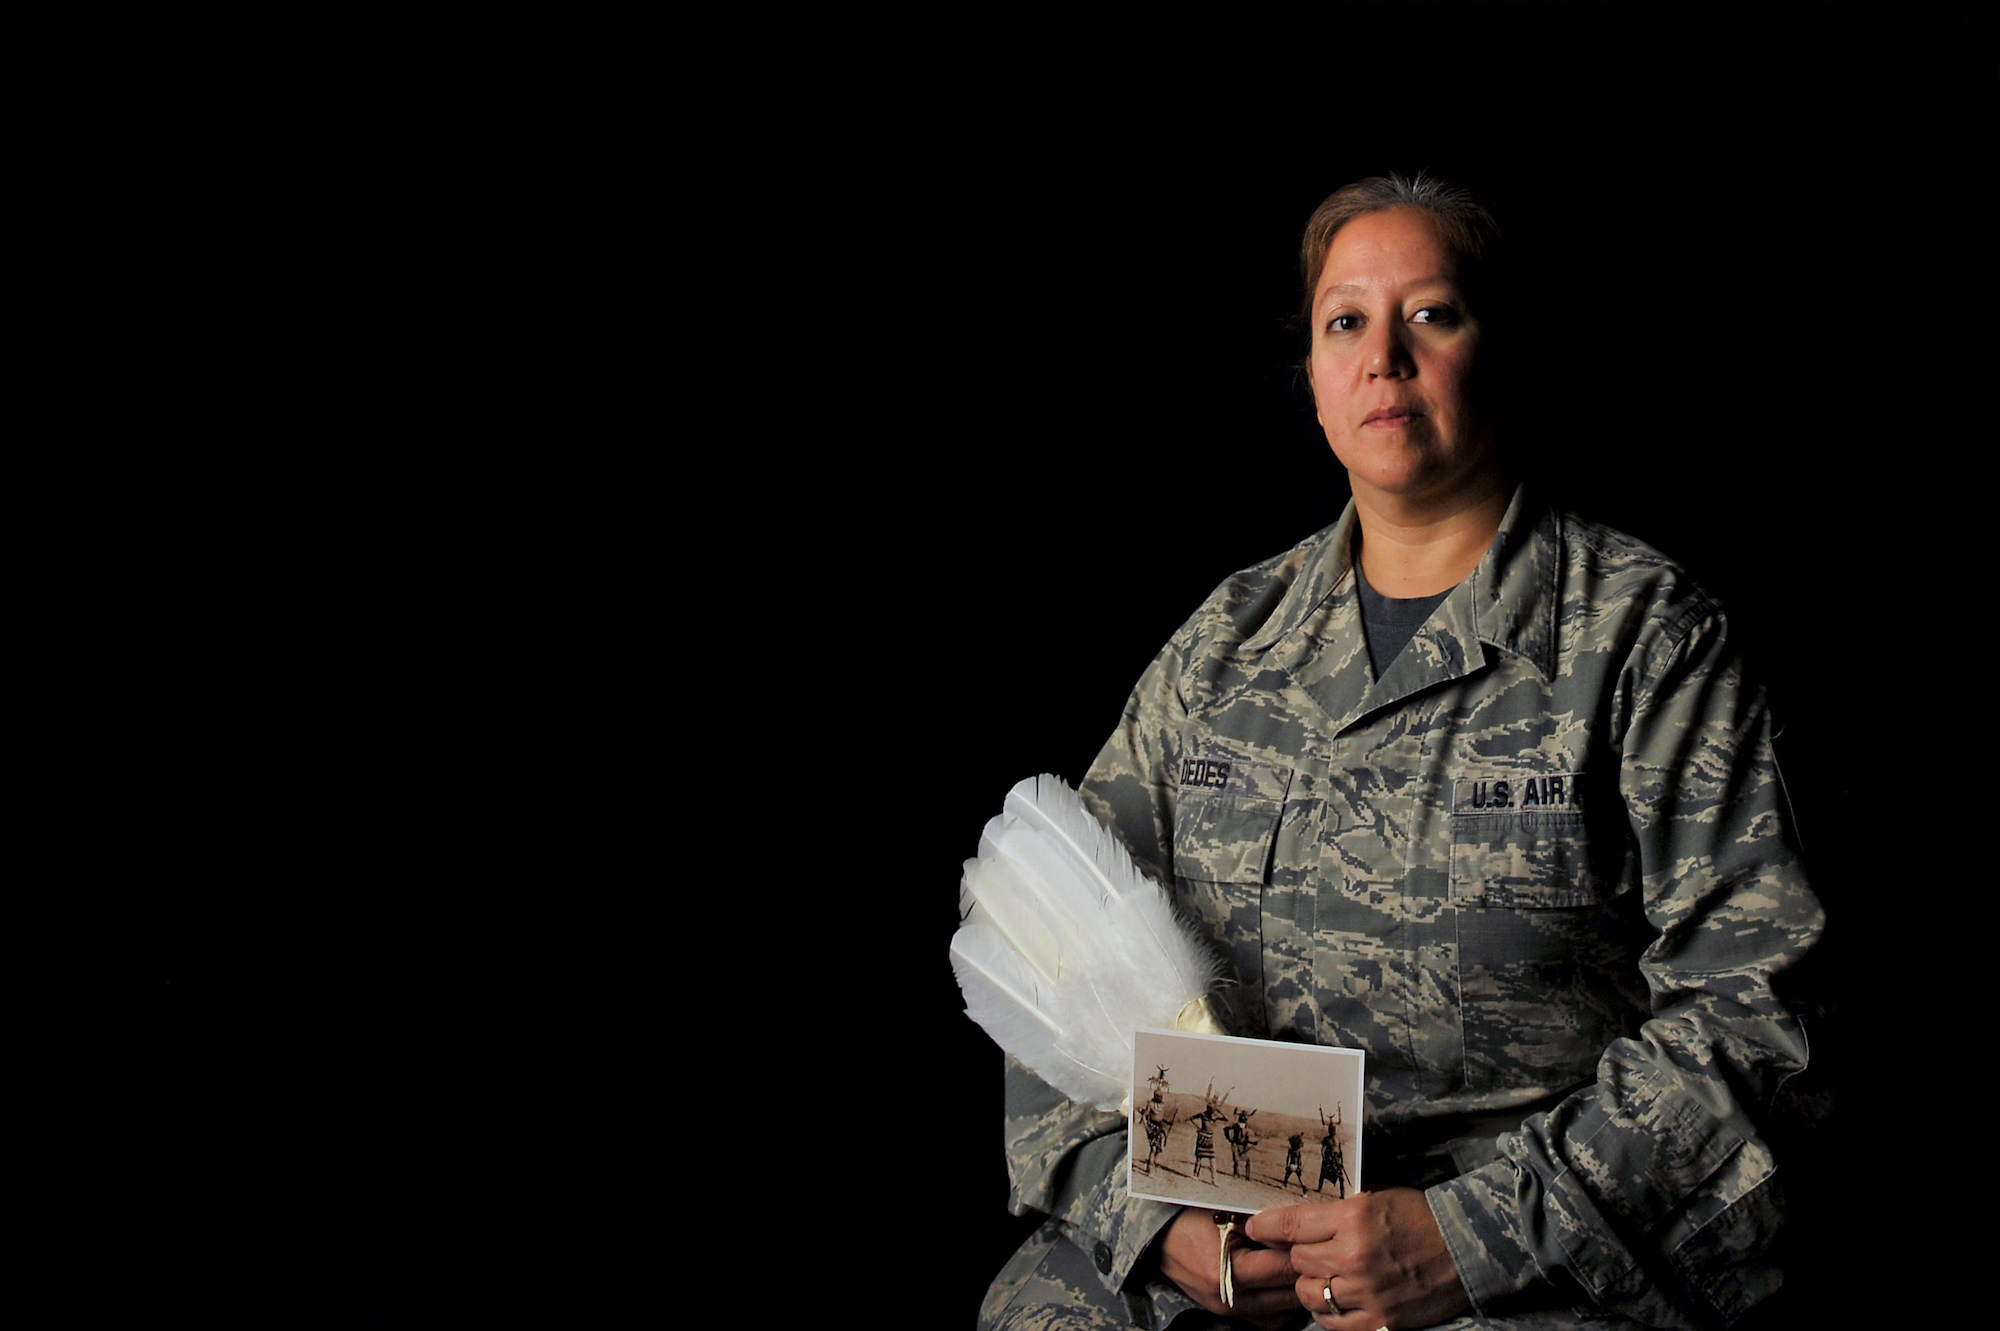 DVIDS: White Mountain Apache soldier proud to represent her tribe in the military